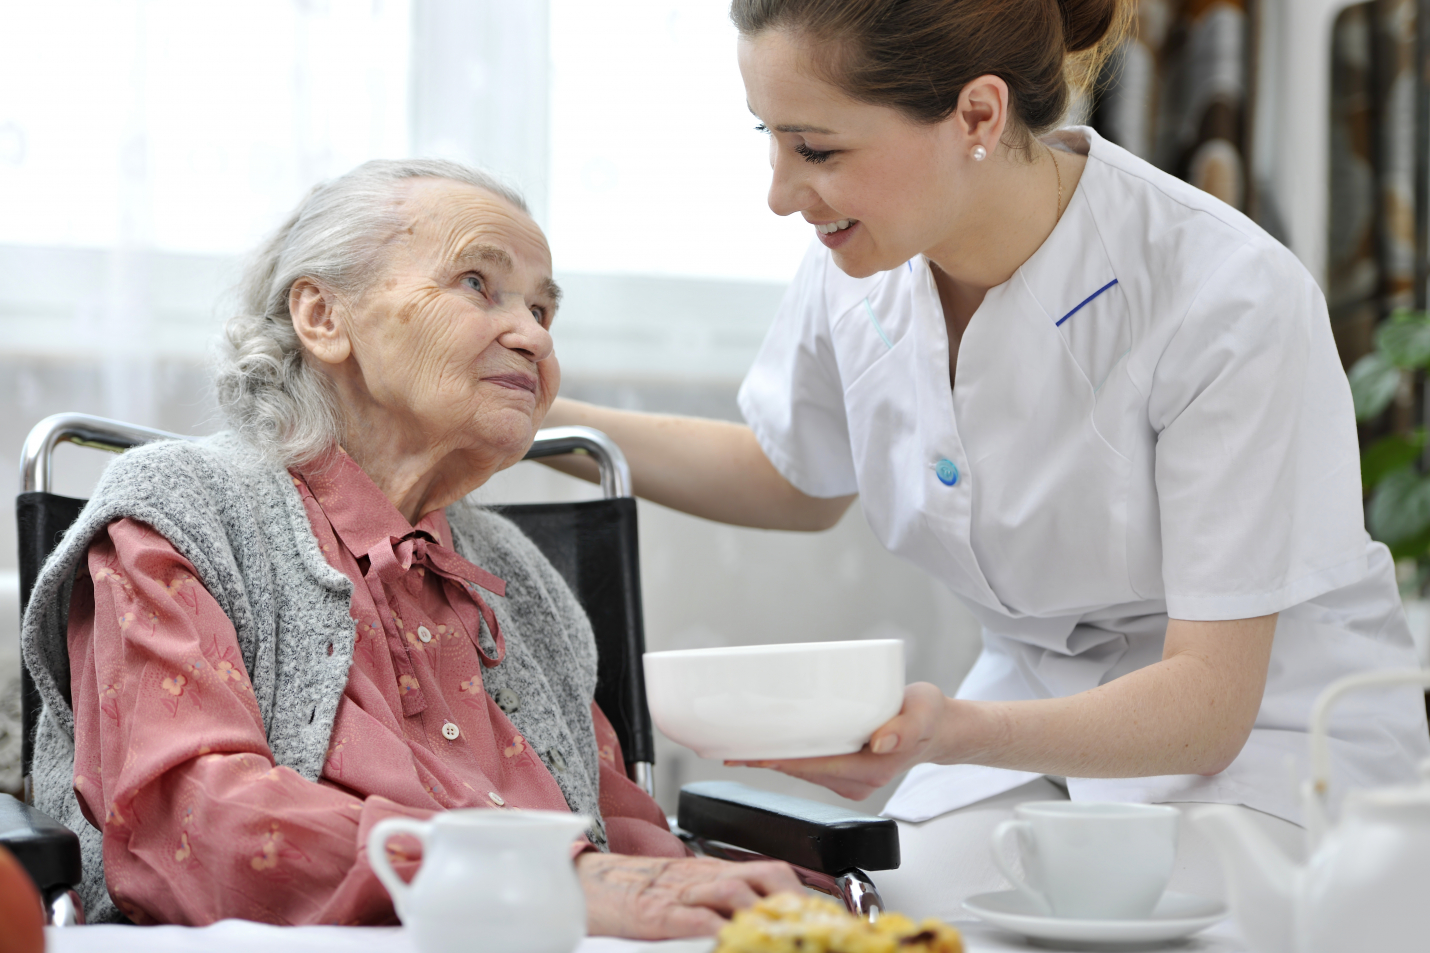 Home carer and patient